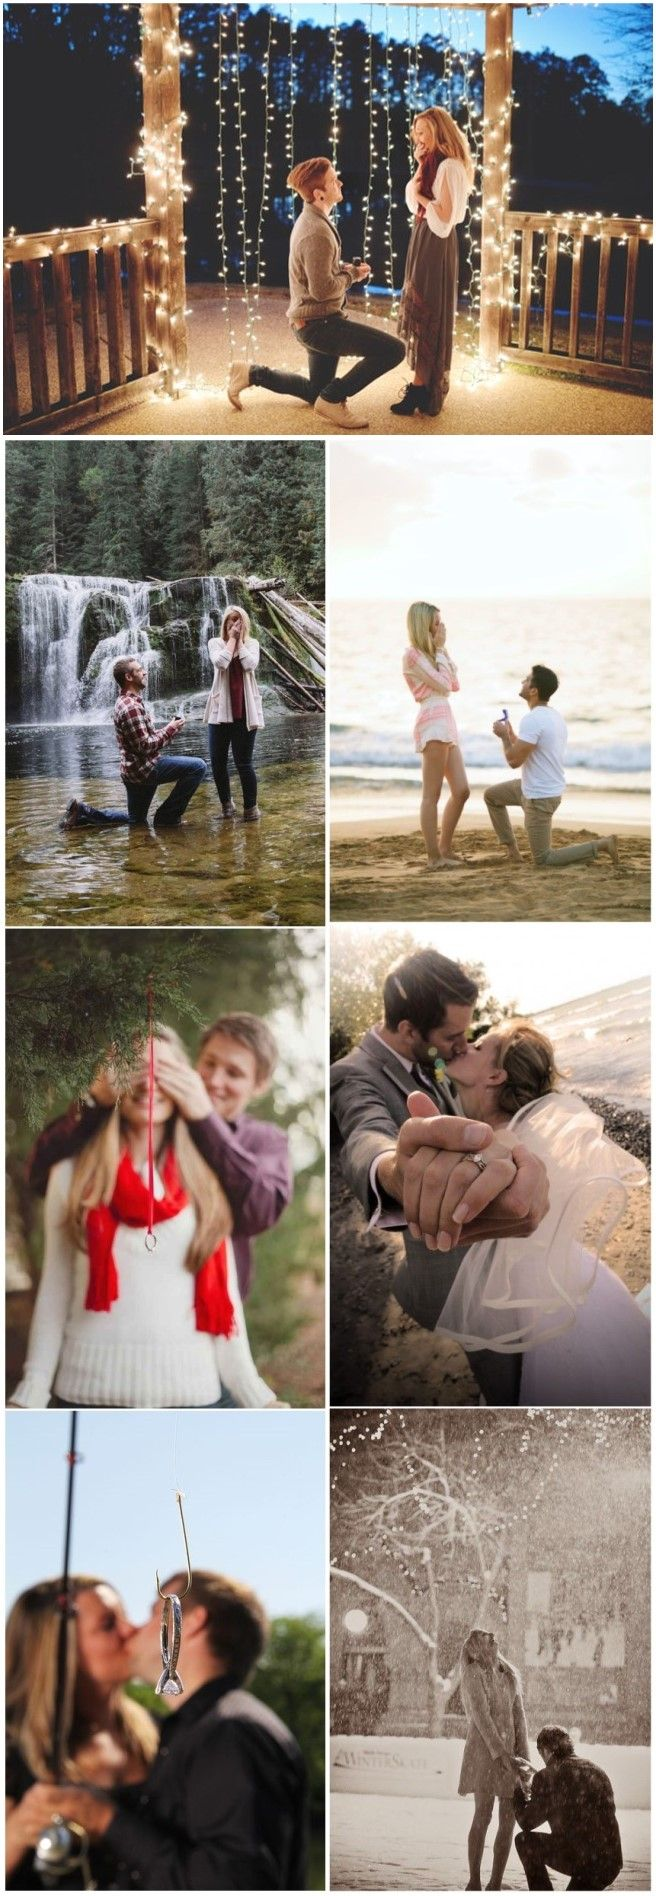 Wedding Photography » 18 Most Romantic Wedding Proposal Photo Ideas! How magical! » ❤️ See more: http://www.weddinginclude.com/2017/04/great-wedding-proposal-photo-ideas-how-magical/